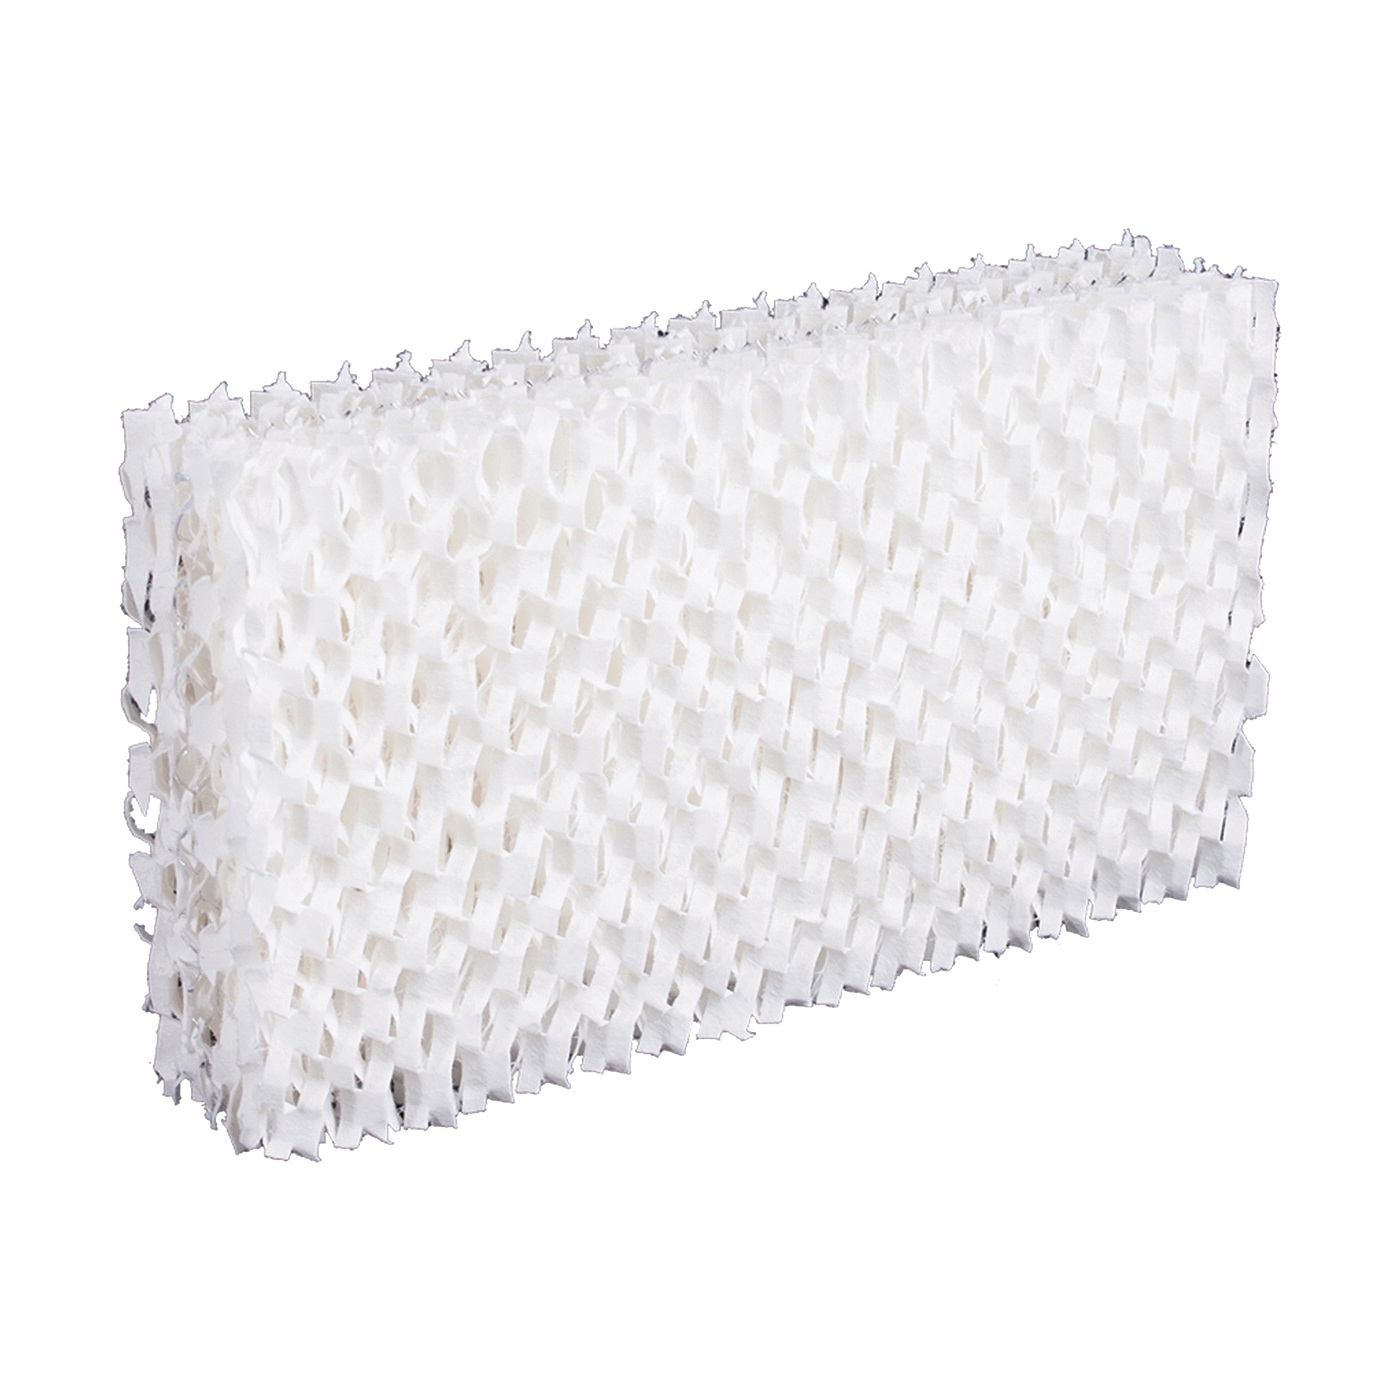 Picture of BestAir E2R Wick Filter, 11 in L, 2 in W, White, For: 14407, 14451, 1442, 29974 (14909) 14416 and 14413 Humidifier